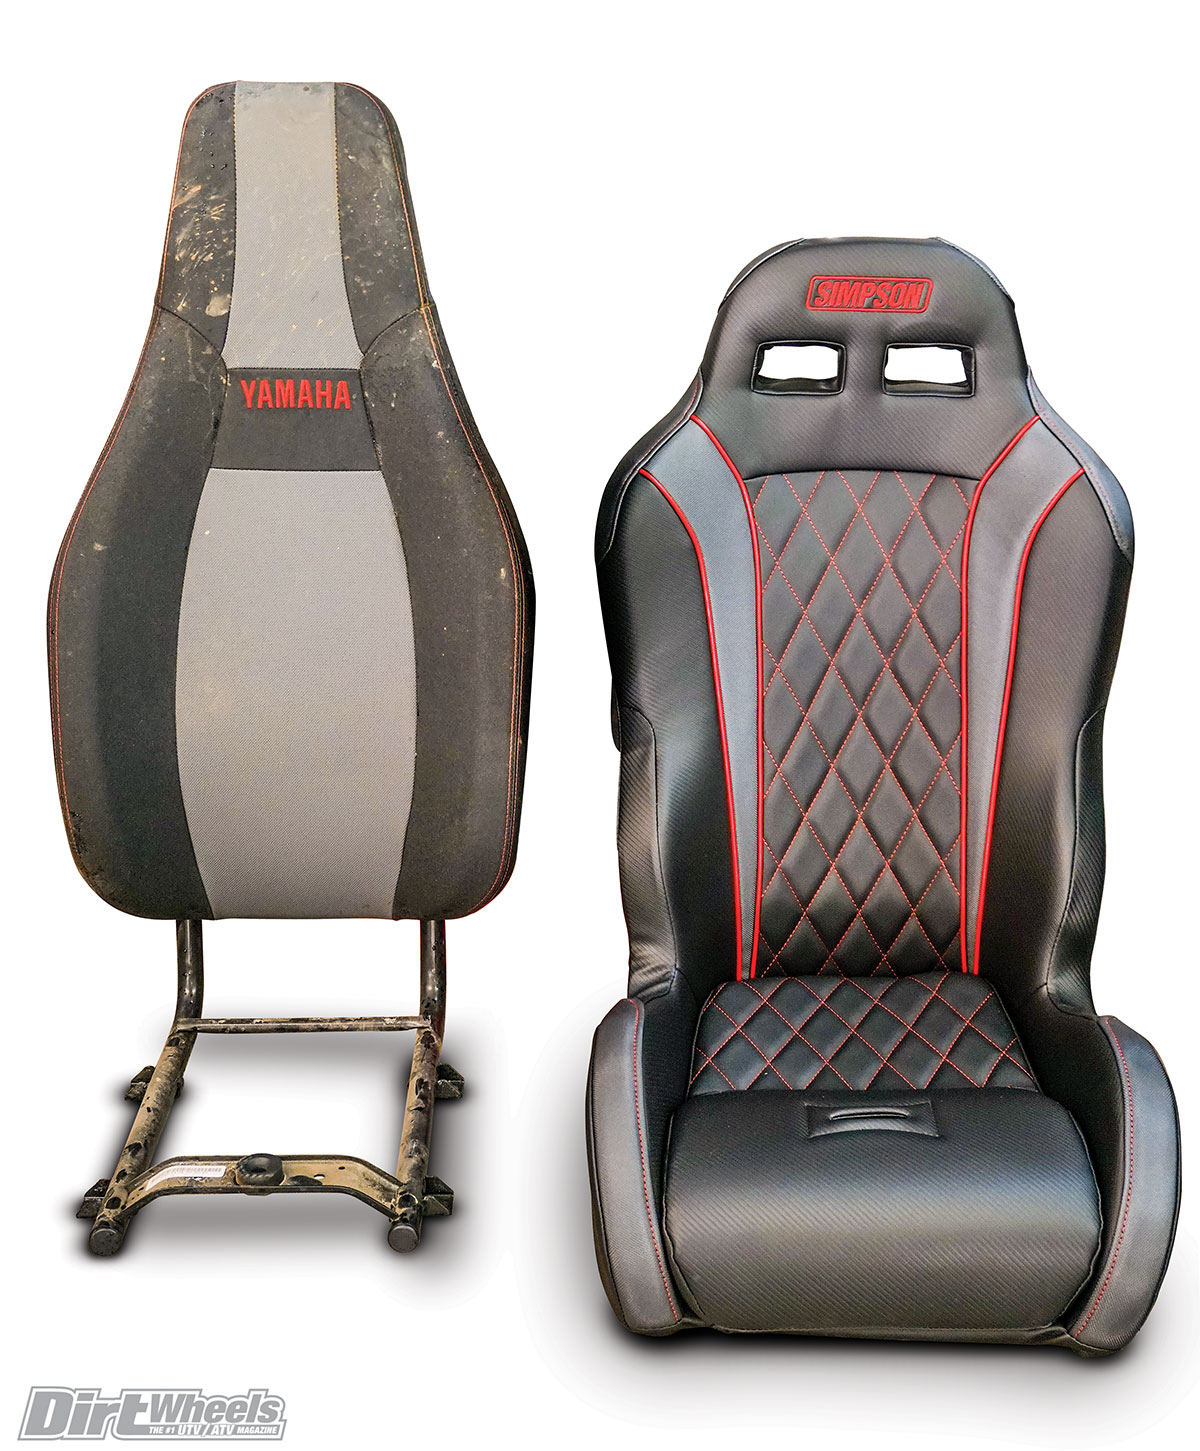 Here You Can See The Difference In Seat Designs OEM Is Much Taller And It Weighed More Than Vortex Biggest Between Two